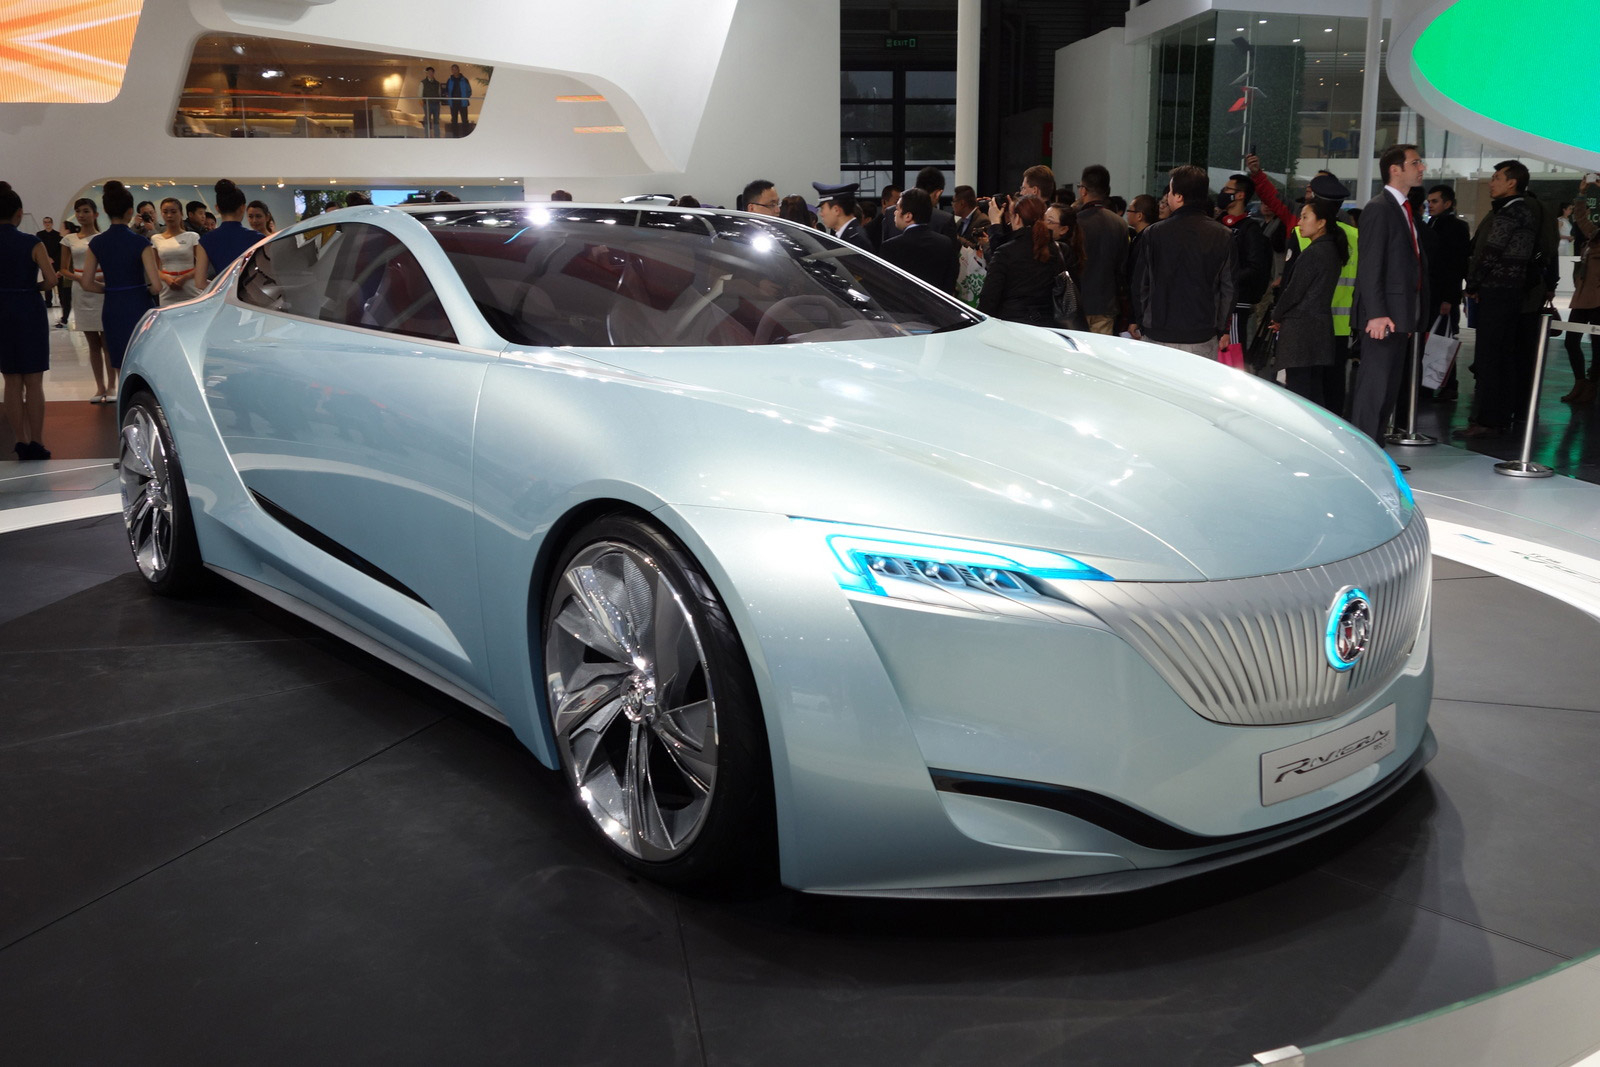 Buick Riviera Concept Isn't Your Father's: Shanghai Auto Show 2021 Buick Riviera Review, Concept, Images